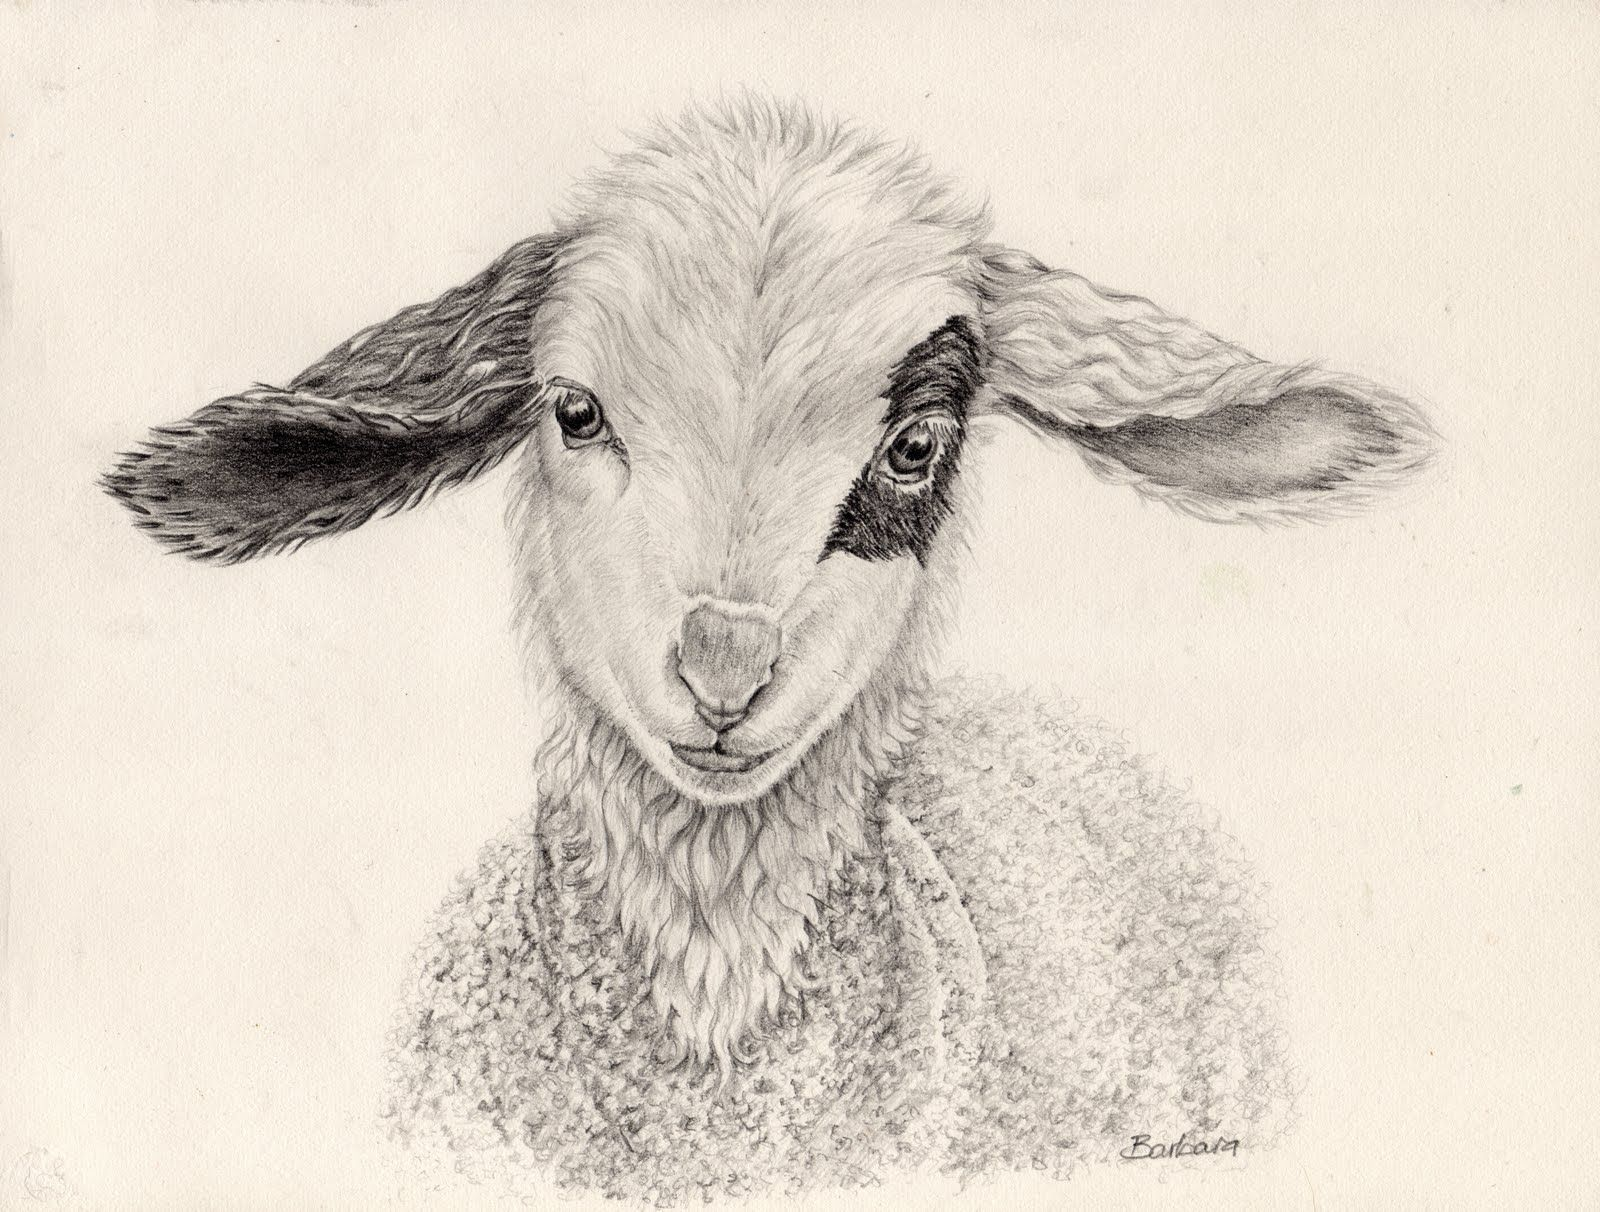 Baby Lamb Drawing Sketching In Nature Happy Easter Animalux Pinterest